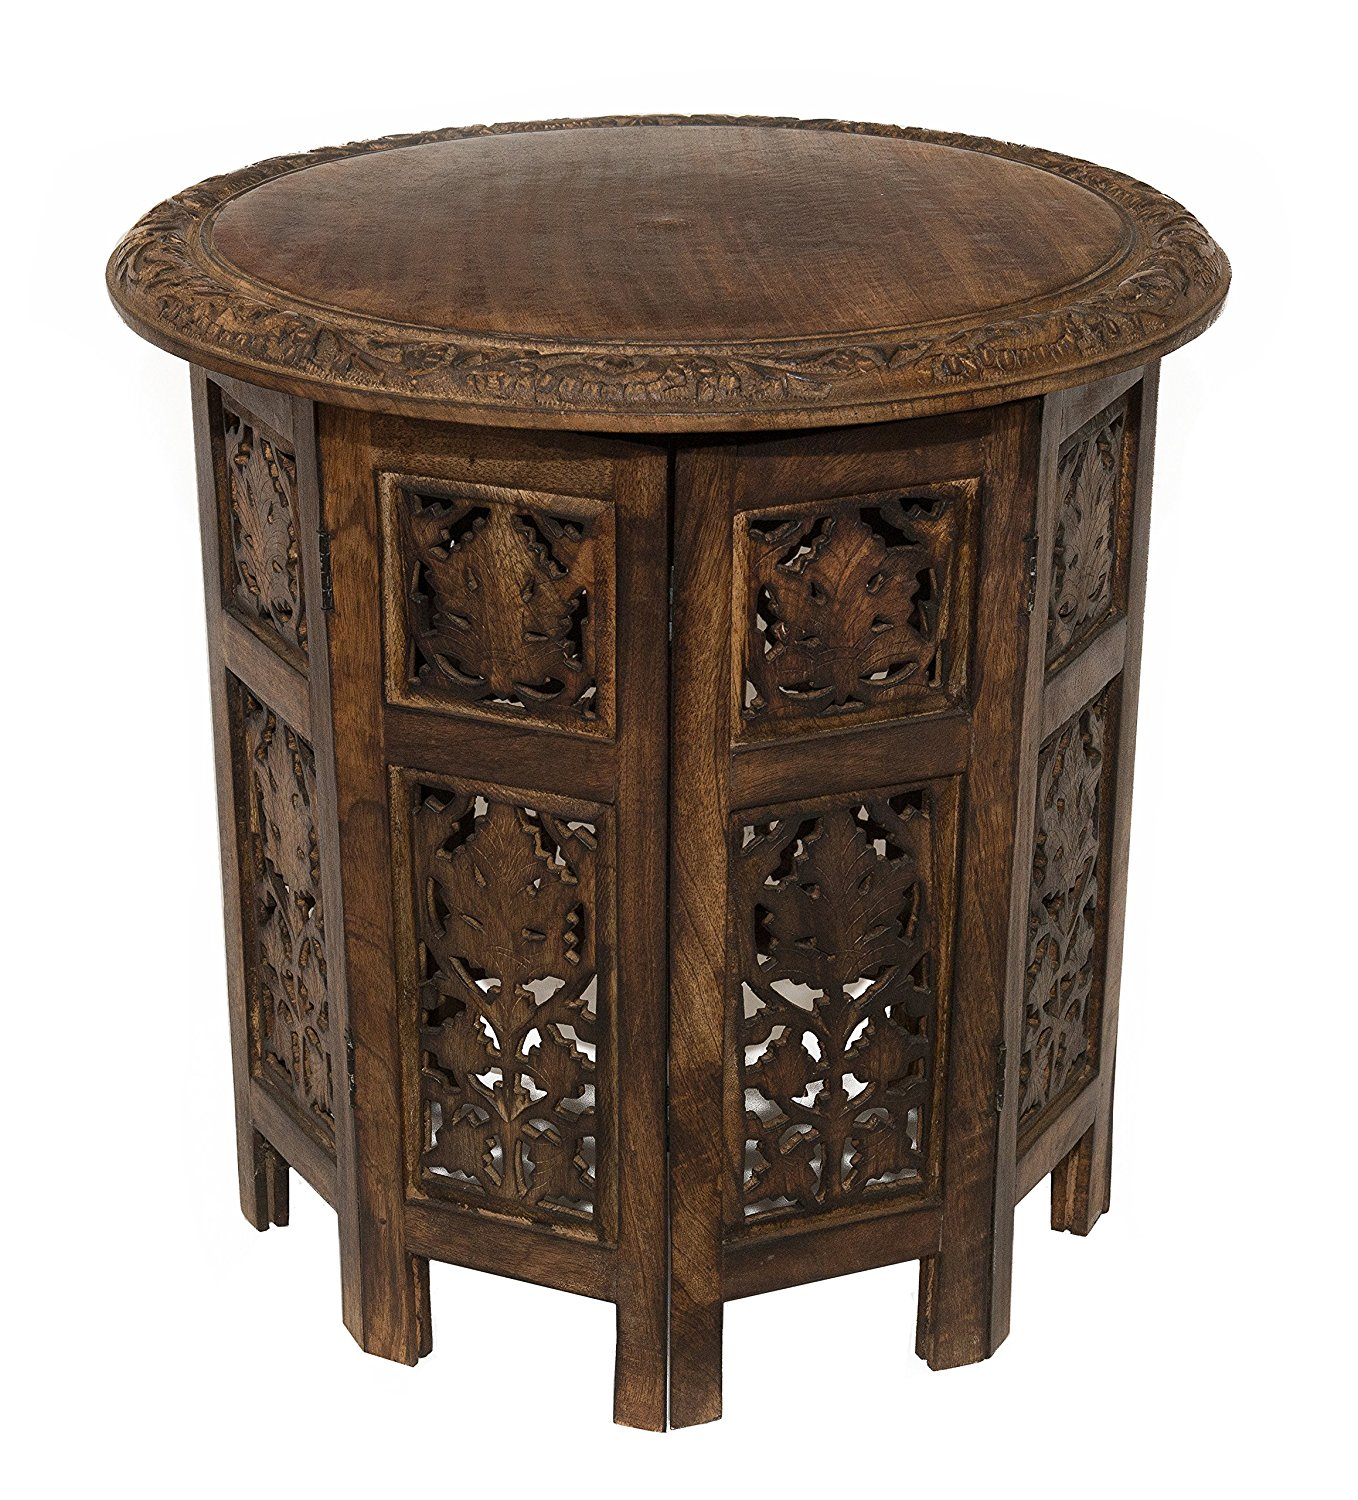 lovely small accent table for ornate end tables wooden round matching coffee and side target black lamp secretary desk rose gold skirts pewter astoria grand bedroom furniture